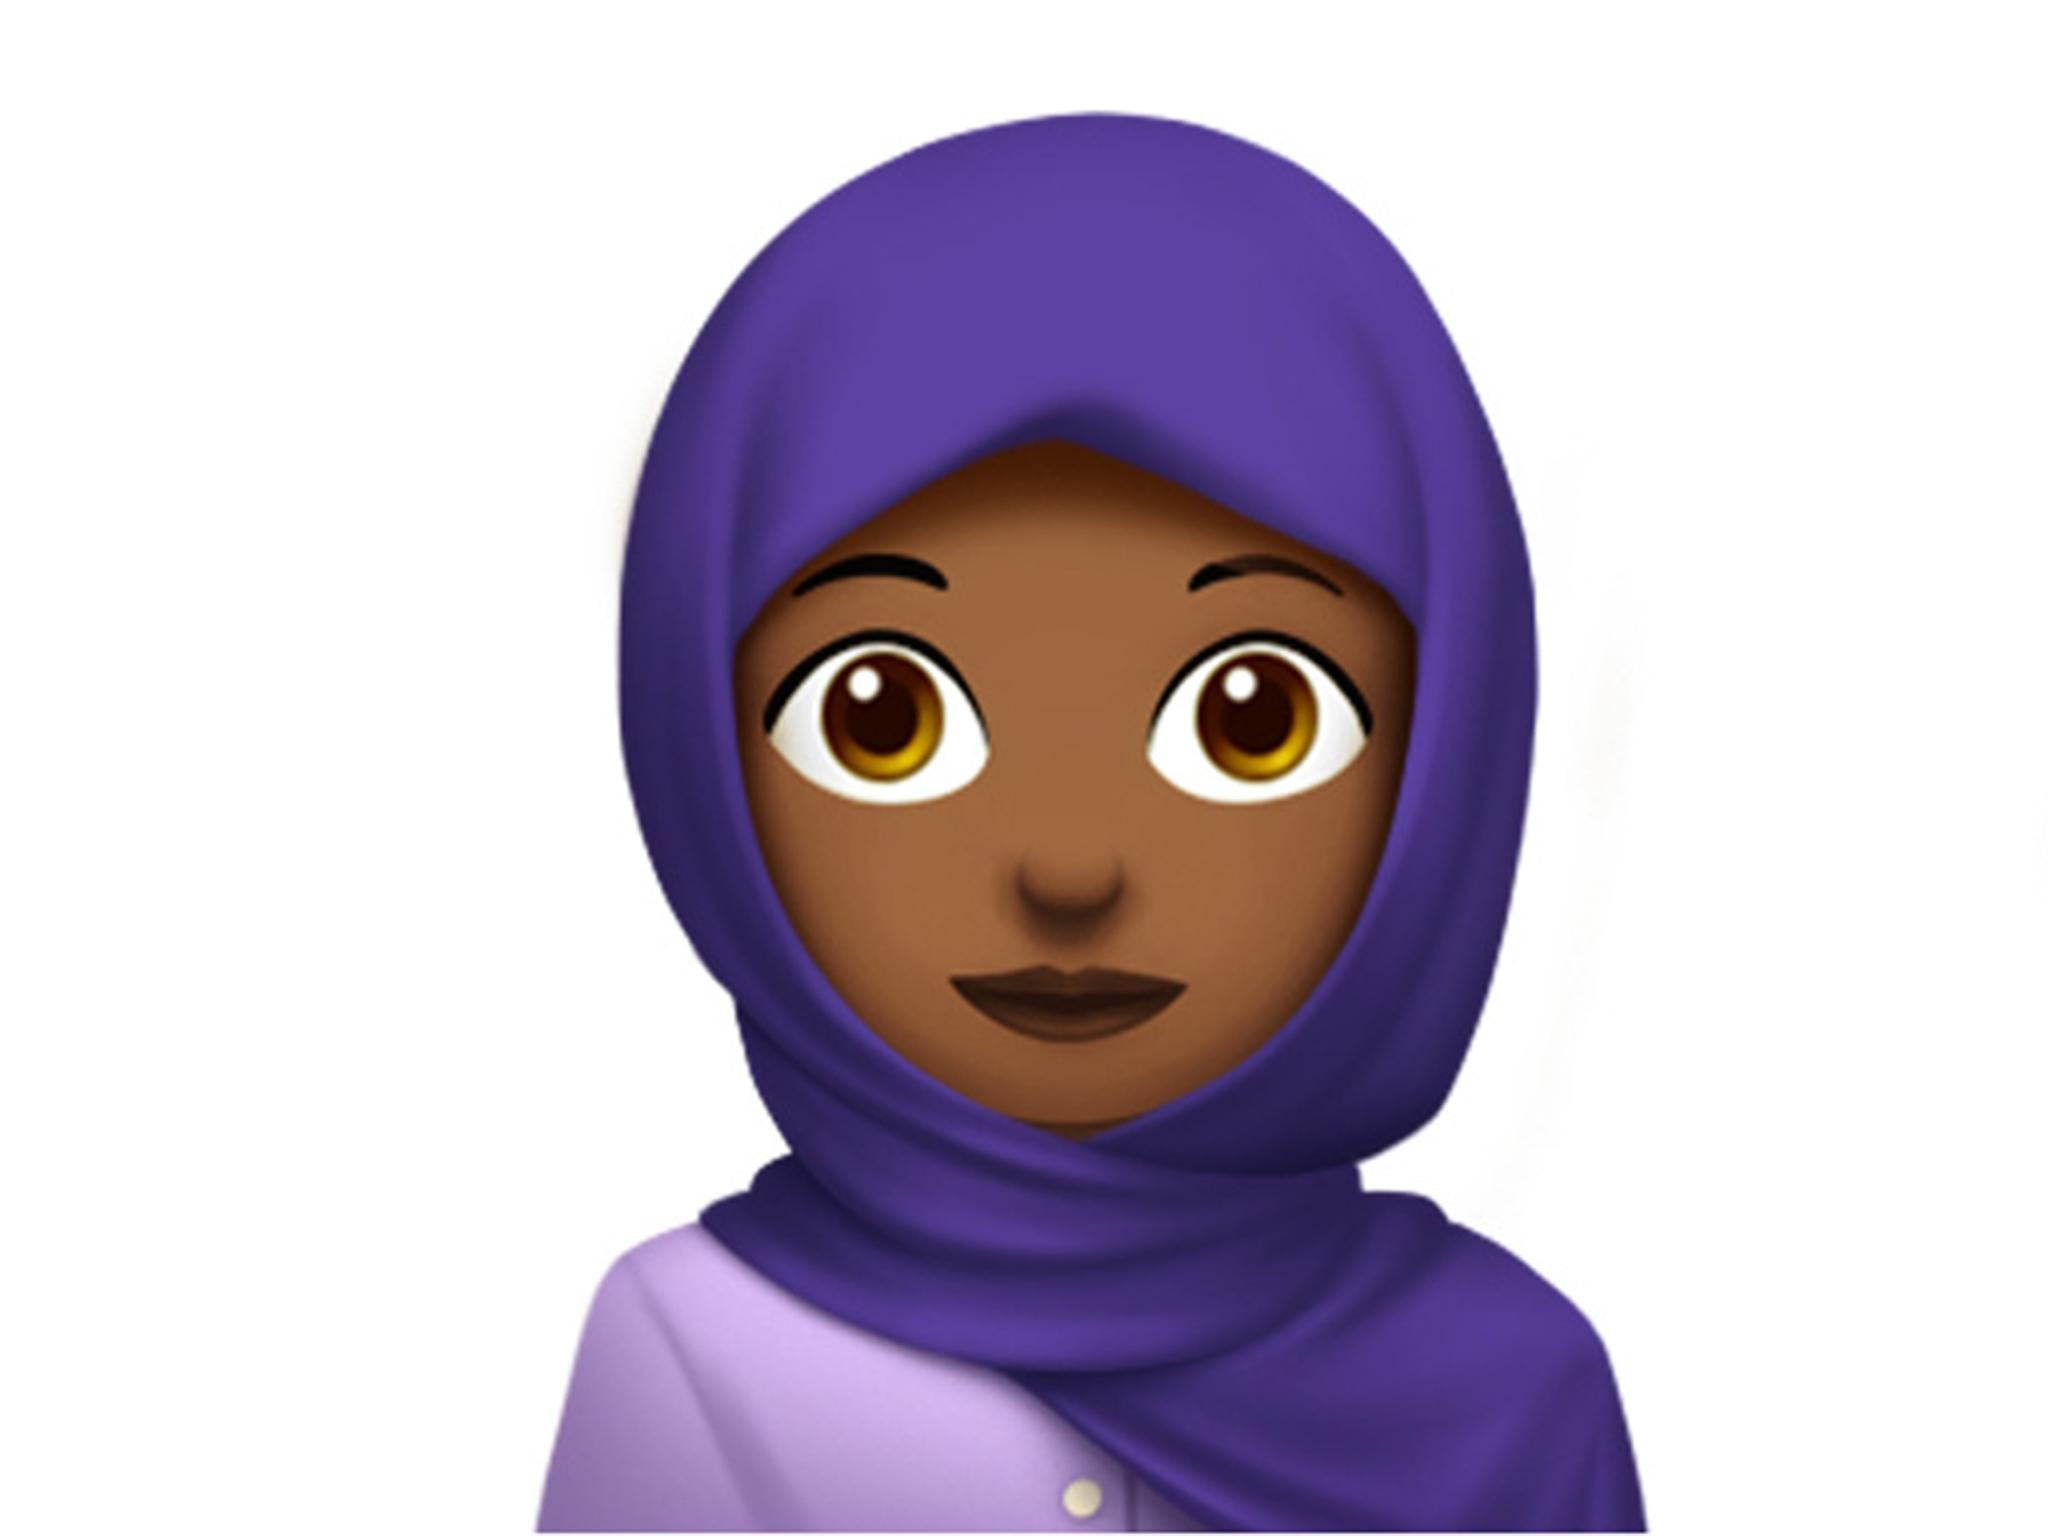 Hijab emoji coming to the iPhone as part of iOS 11.1 update   The  Independent   The Independent